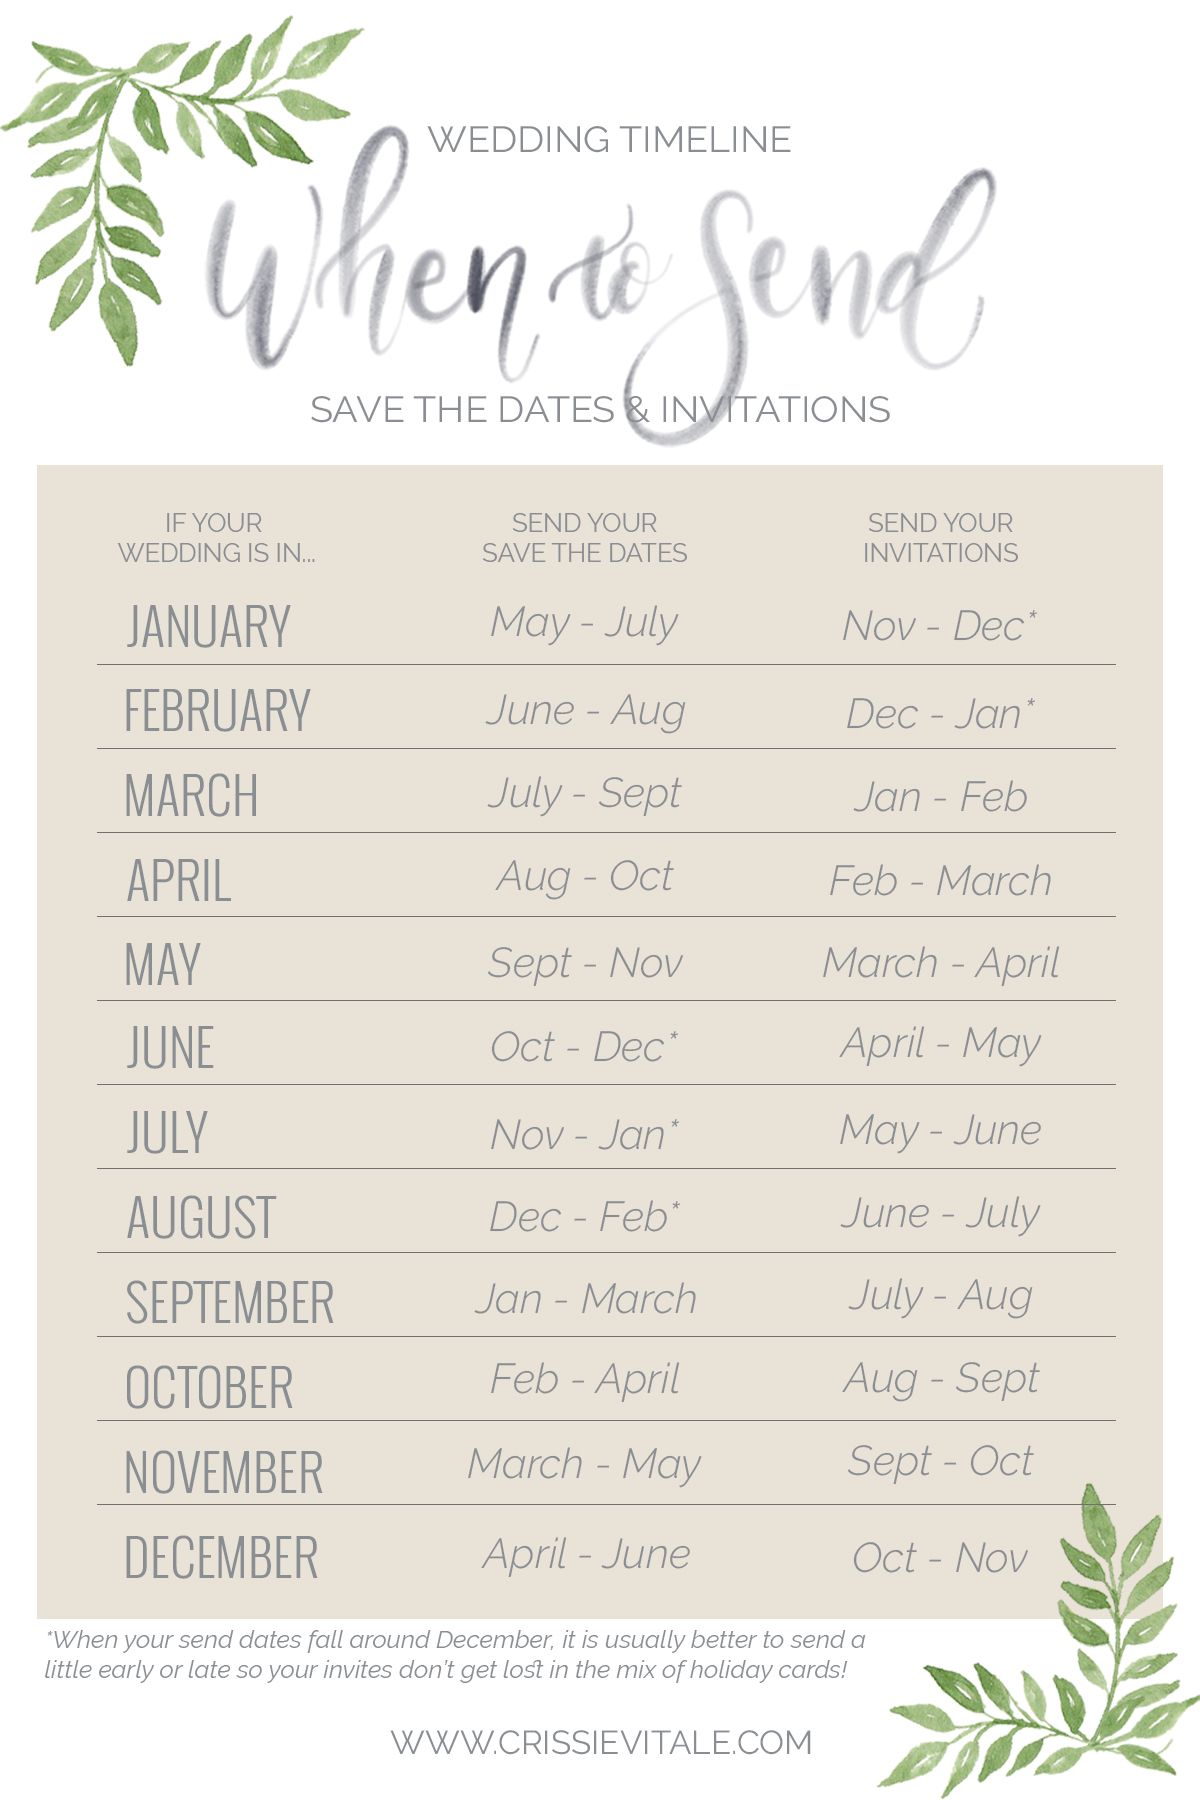 Wedding Timelines When to Order and Mail Your Invitations